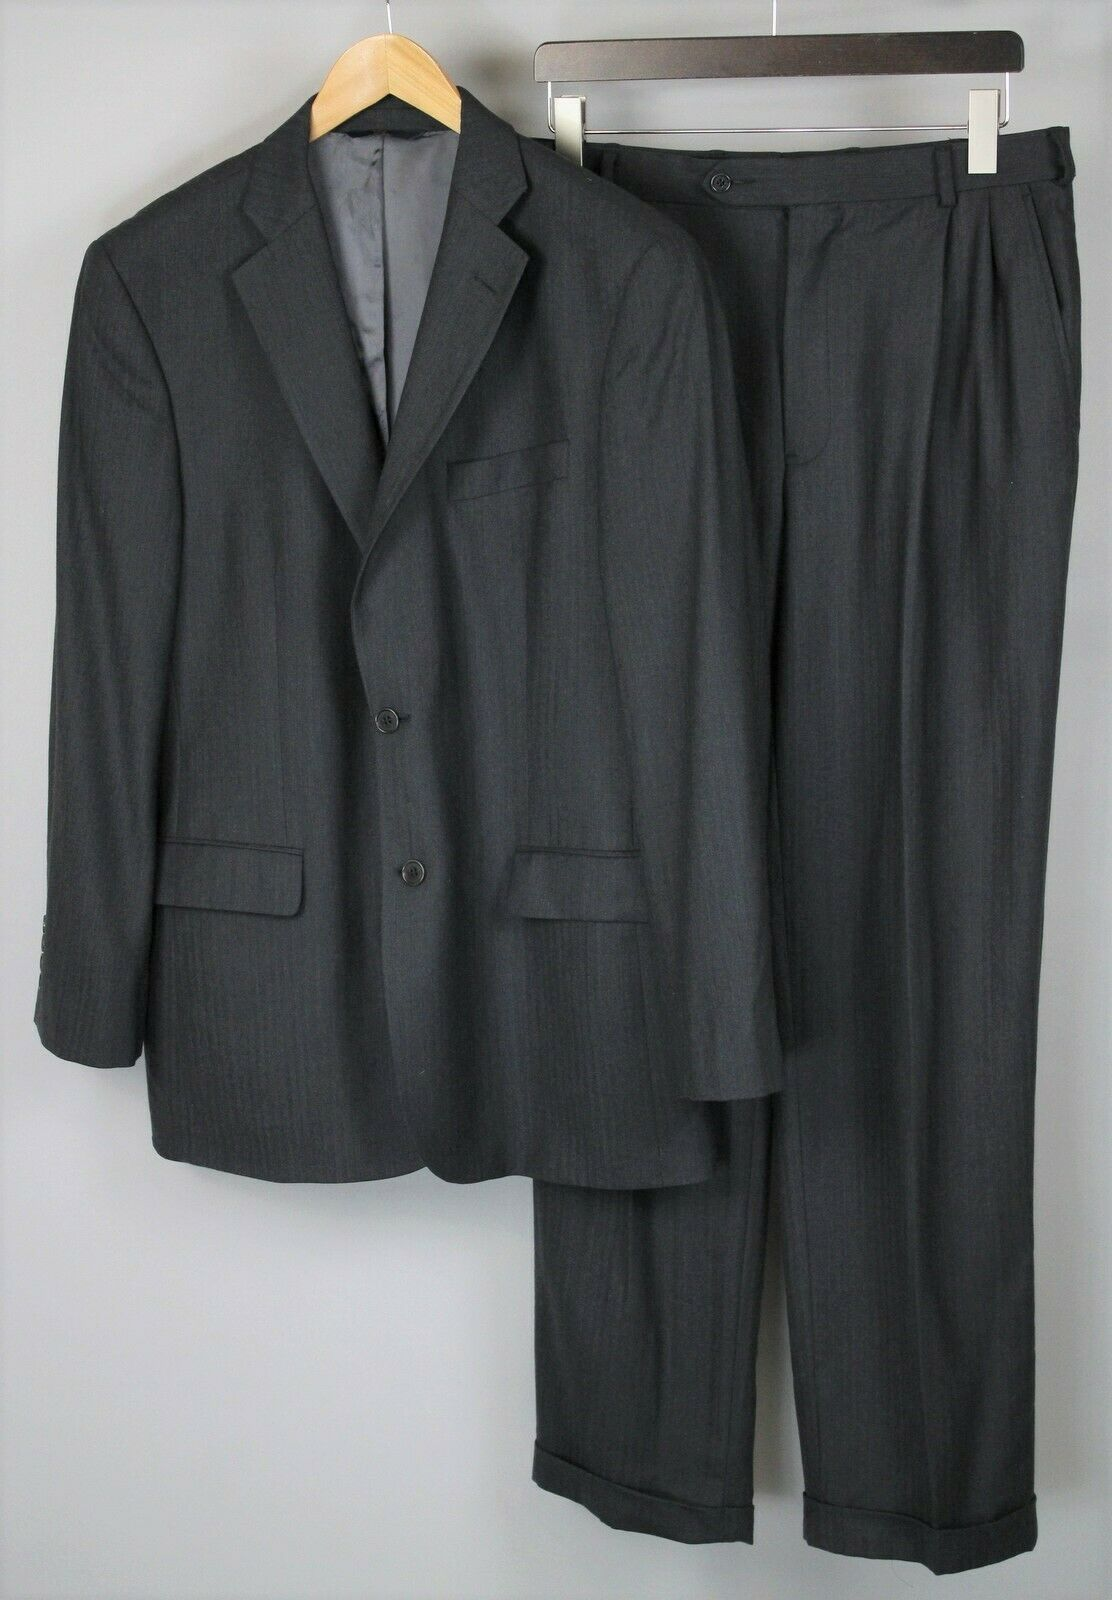 BROOKS BredHERS STRETCH Men or X LARGE, W34 L33 Wool Formal Suit RCS12823